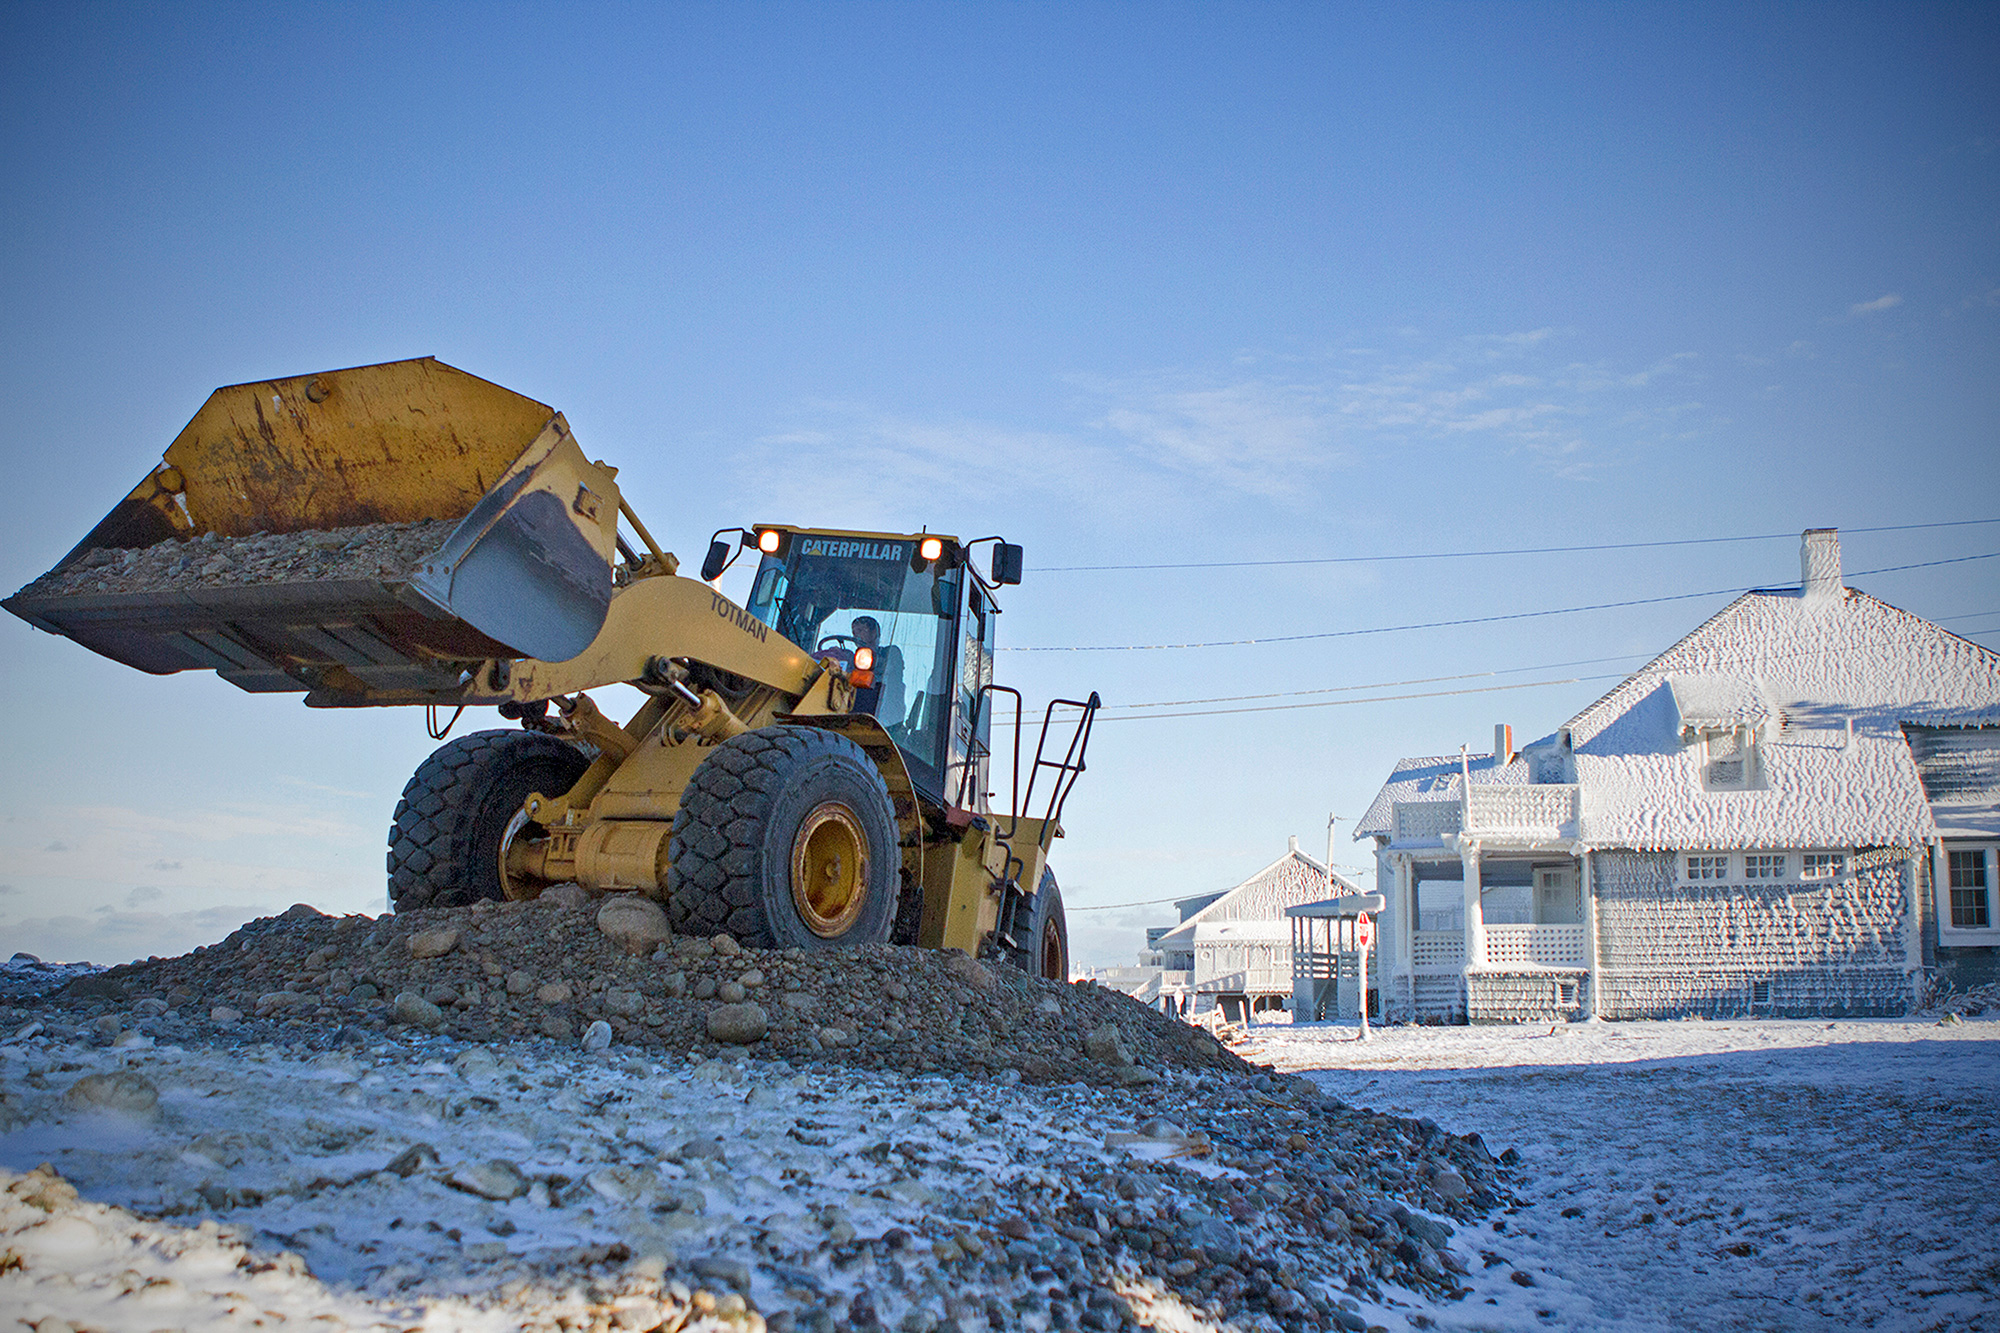 A wheel loader scoops up detritus from the ocean while rebuilding a road in Scituate following a 2015 winter storm that flooded dozens of homes, destroyed streets and power lines and even pulled buildings into the sea. Some homes in the town have been damaged and rebuilt more than 10 times with funding from the federal government and community tax money. (Photo by Lauren Owens Lambert/GroundTruth)